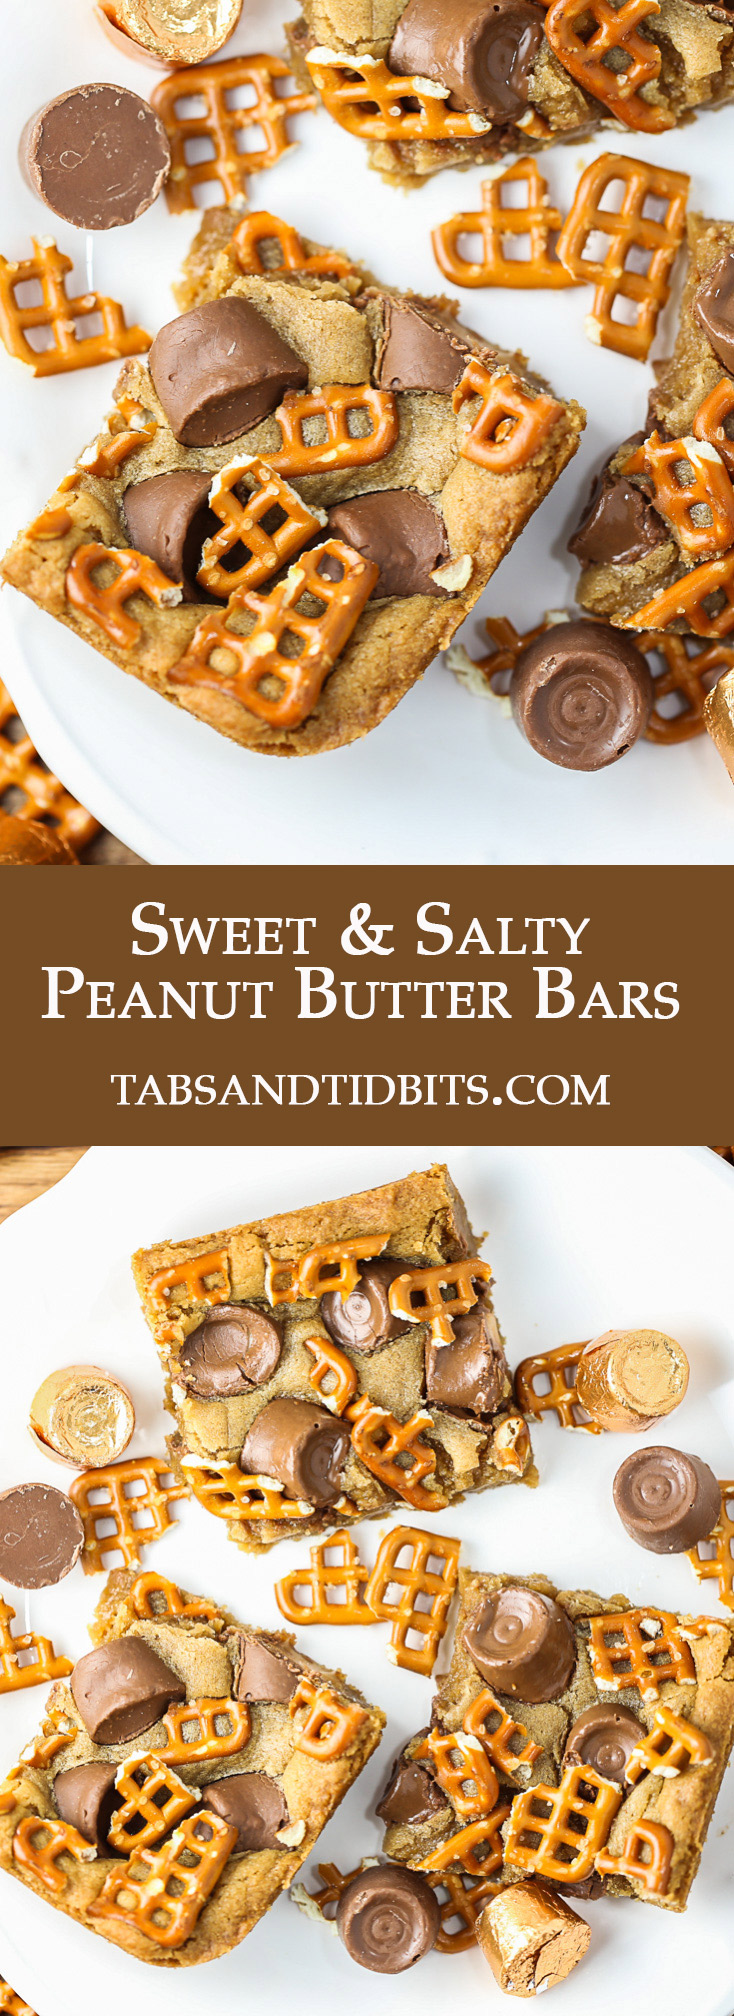 Only 3 ingredients required for these sweet and salty gooey bars!